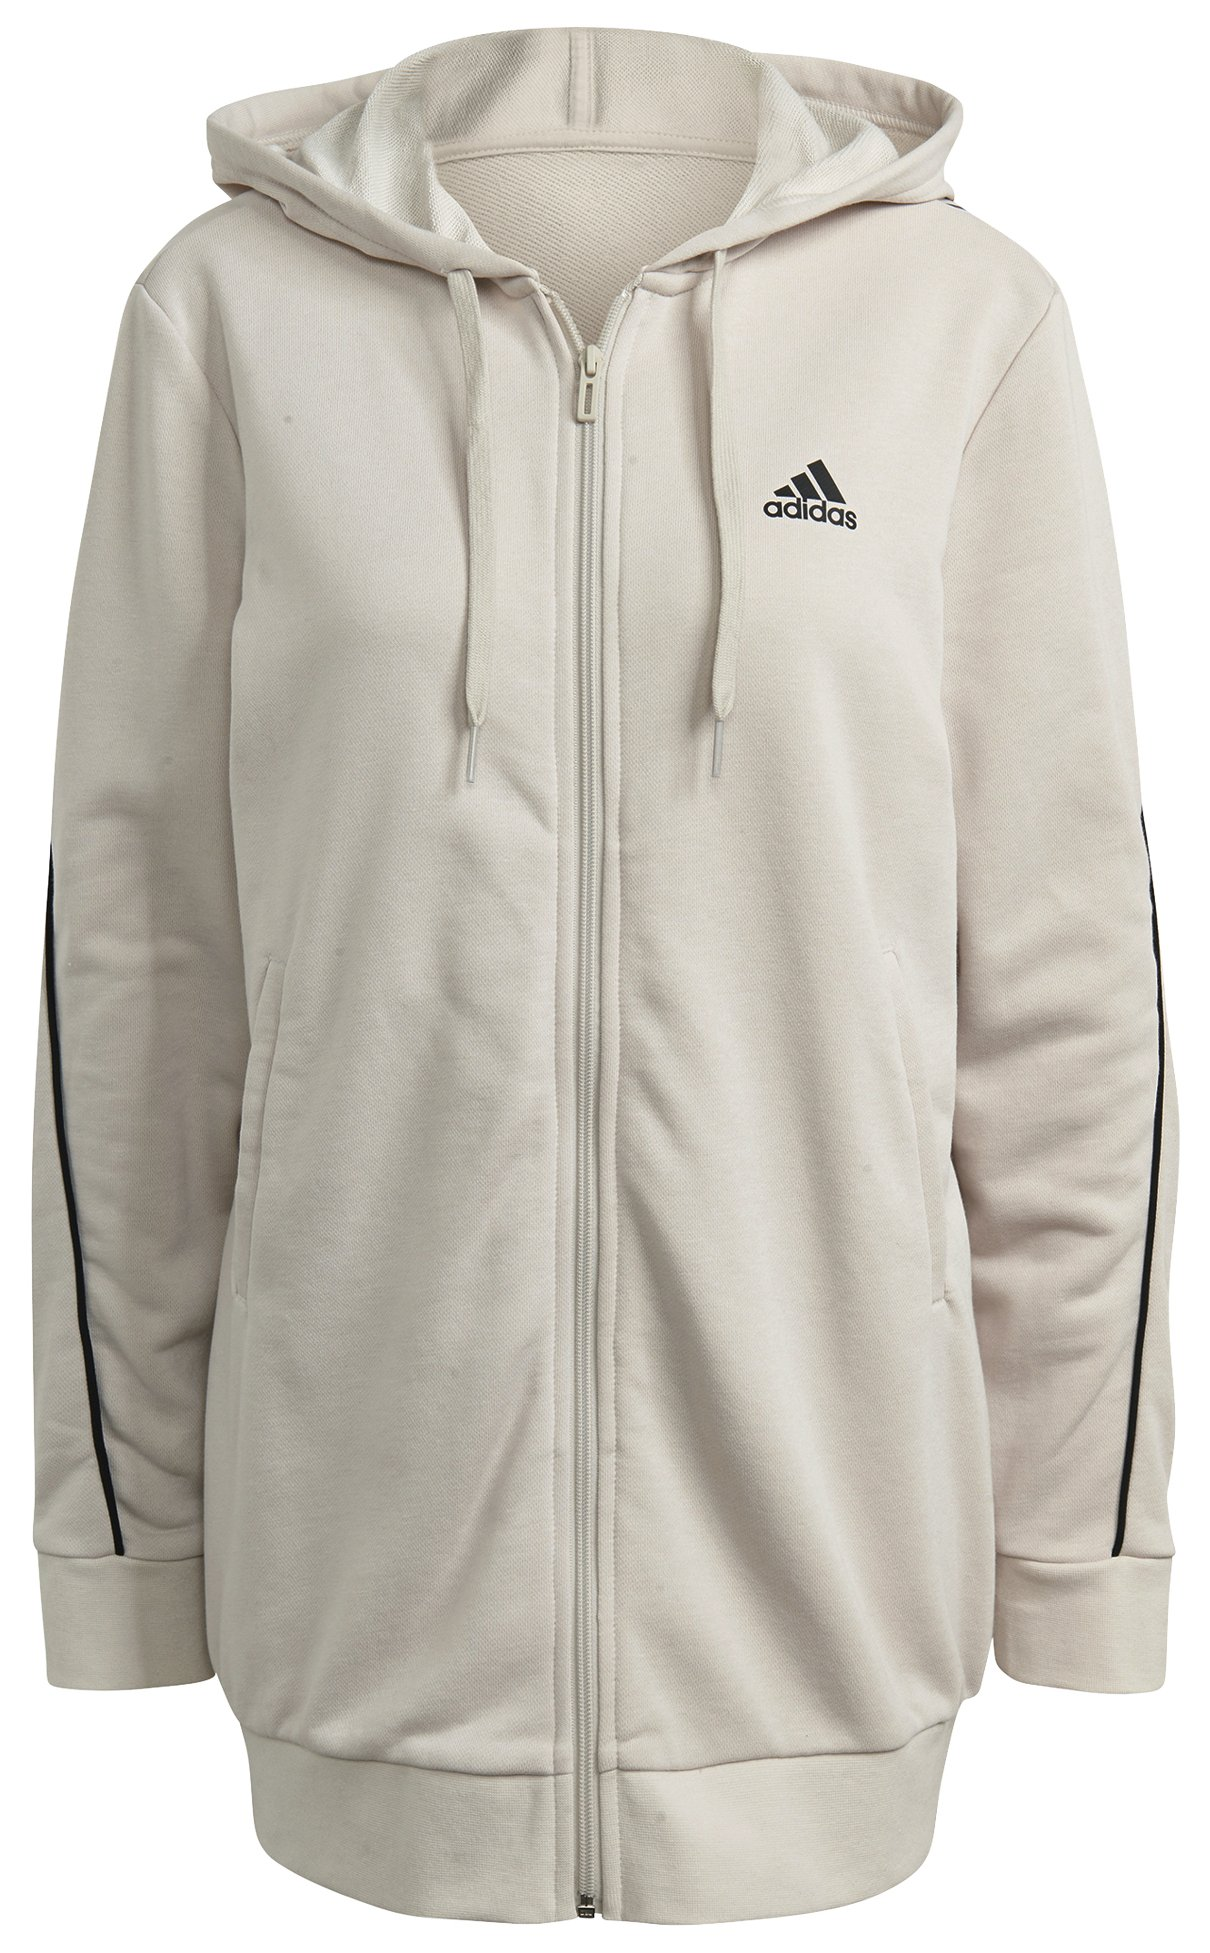 Adidas Essentials Giant Full Zip Hoodie M